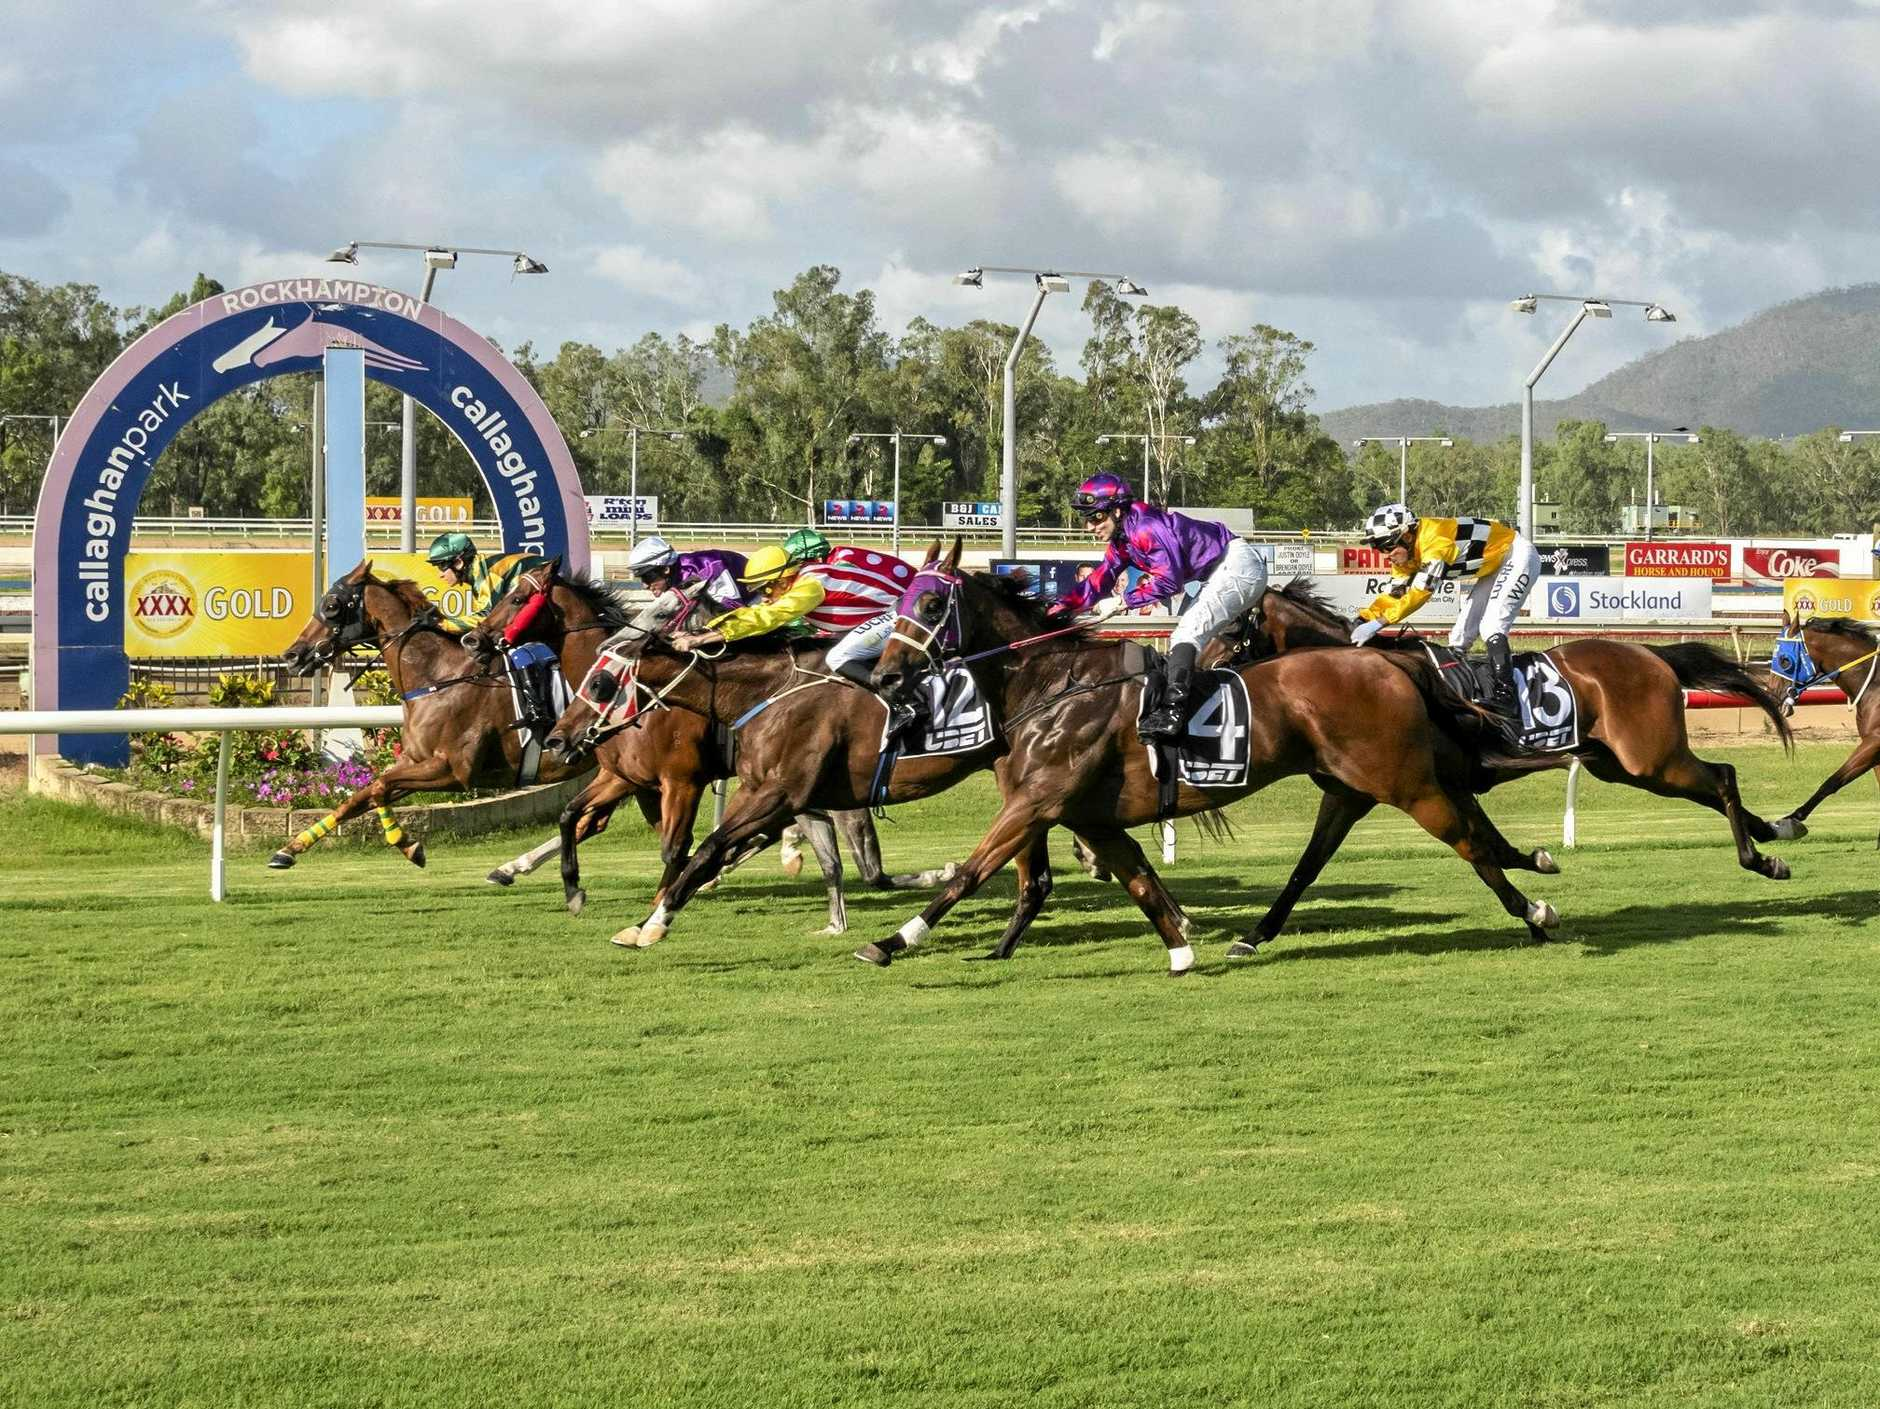 Heads were bobbing when Four Excel (inside) just beat Ragazzo Del Corsa (white cap) and Just Call Me Louie (yellow) with the grey head of Paradis Imperial (in between fourth) and Conga Del Sogno (outside) in a barnstorming finish in the last race of 2108 at Callaghan Park on Saturday.